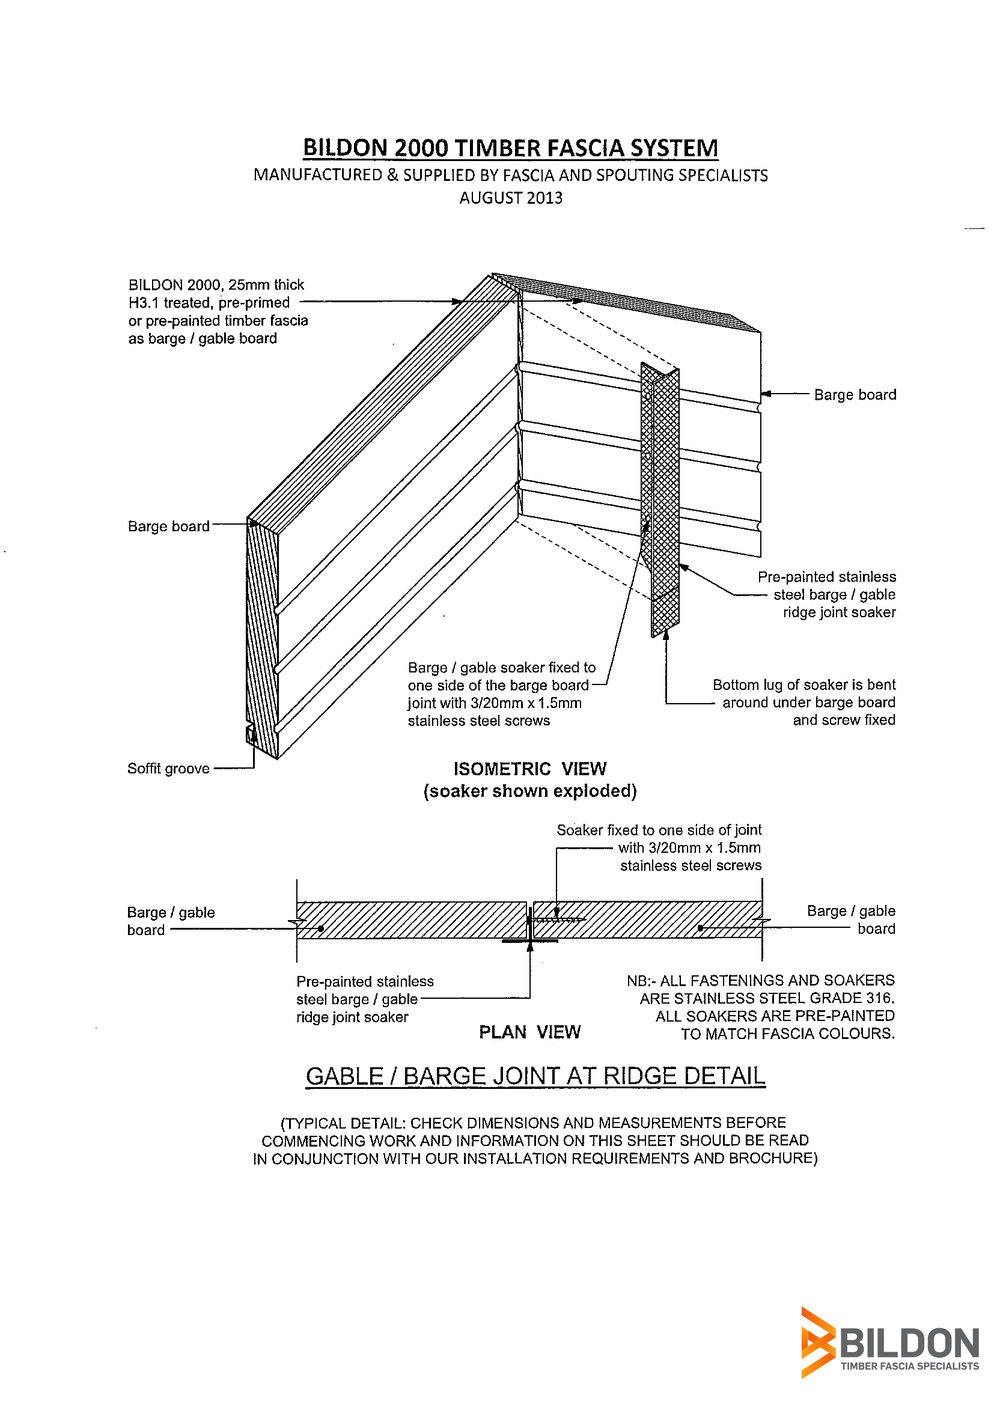 Gable:Barge Joint at Ridge Detail.jpg